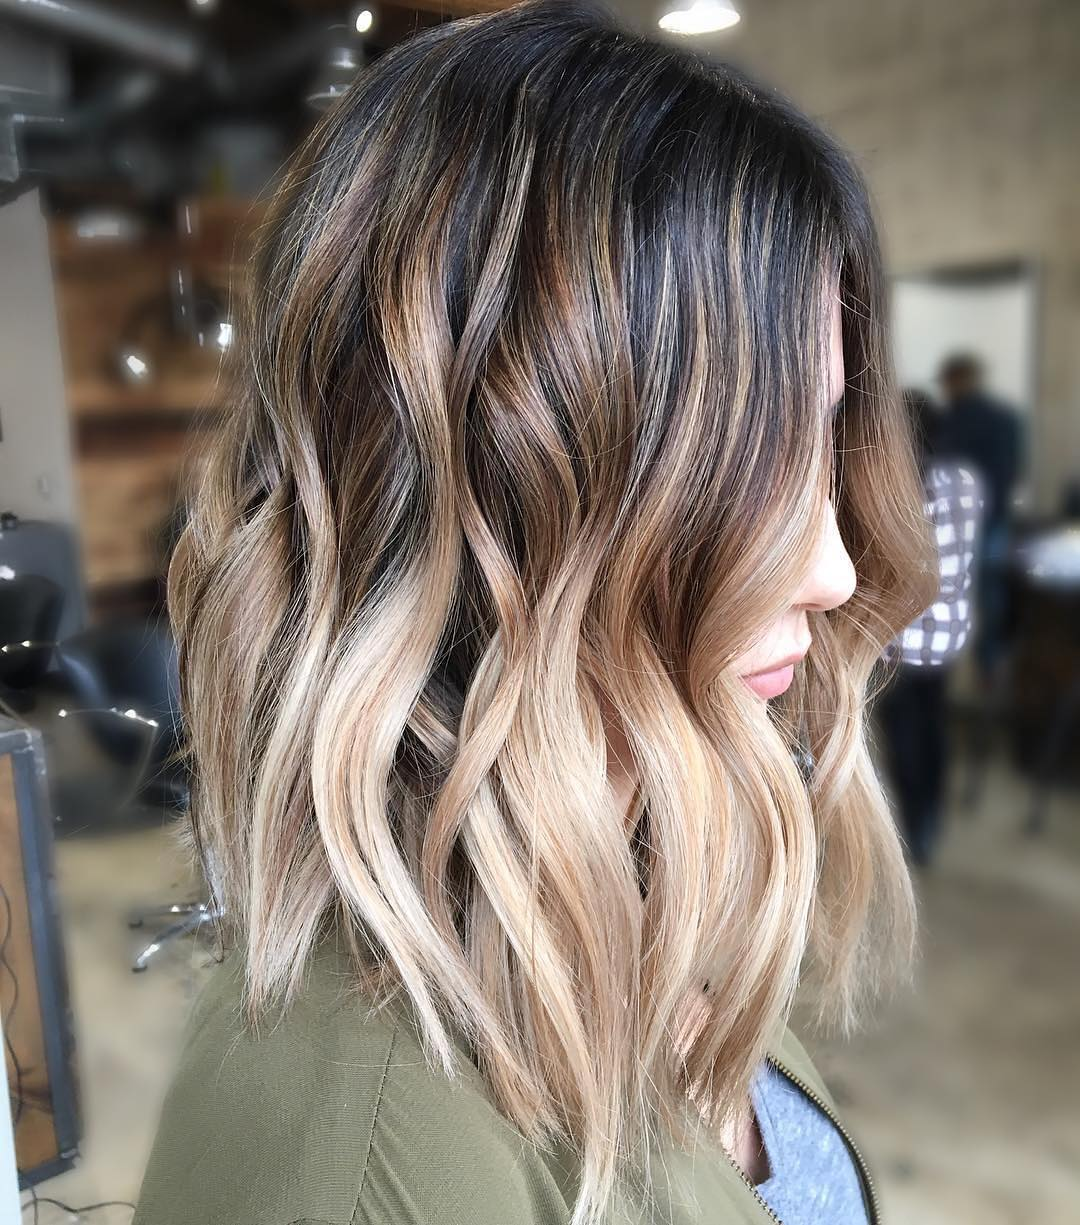 styling ideas for shoulder length hair 10 balayage ombre hair styles for shoulder length hair 8667